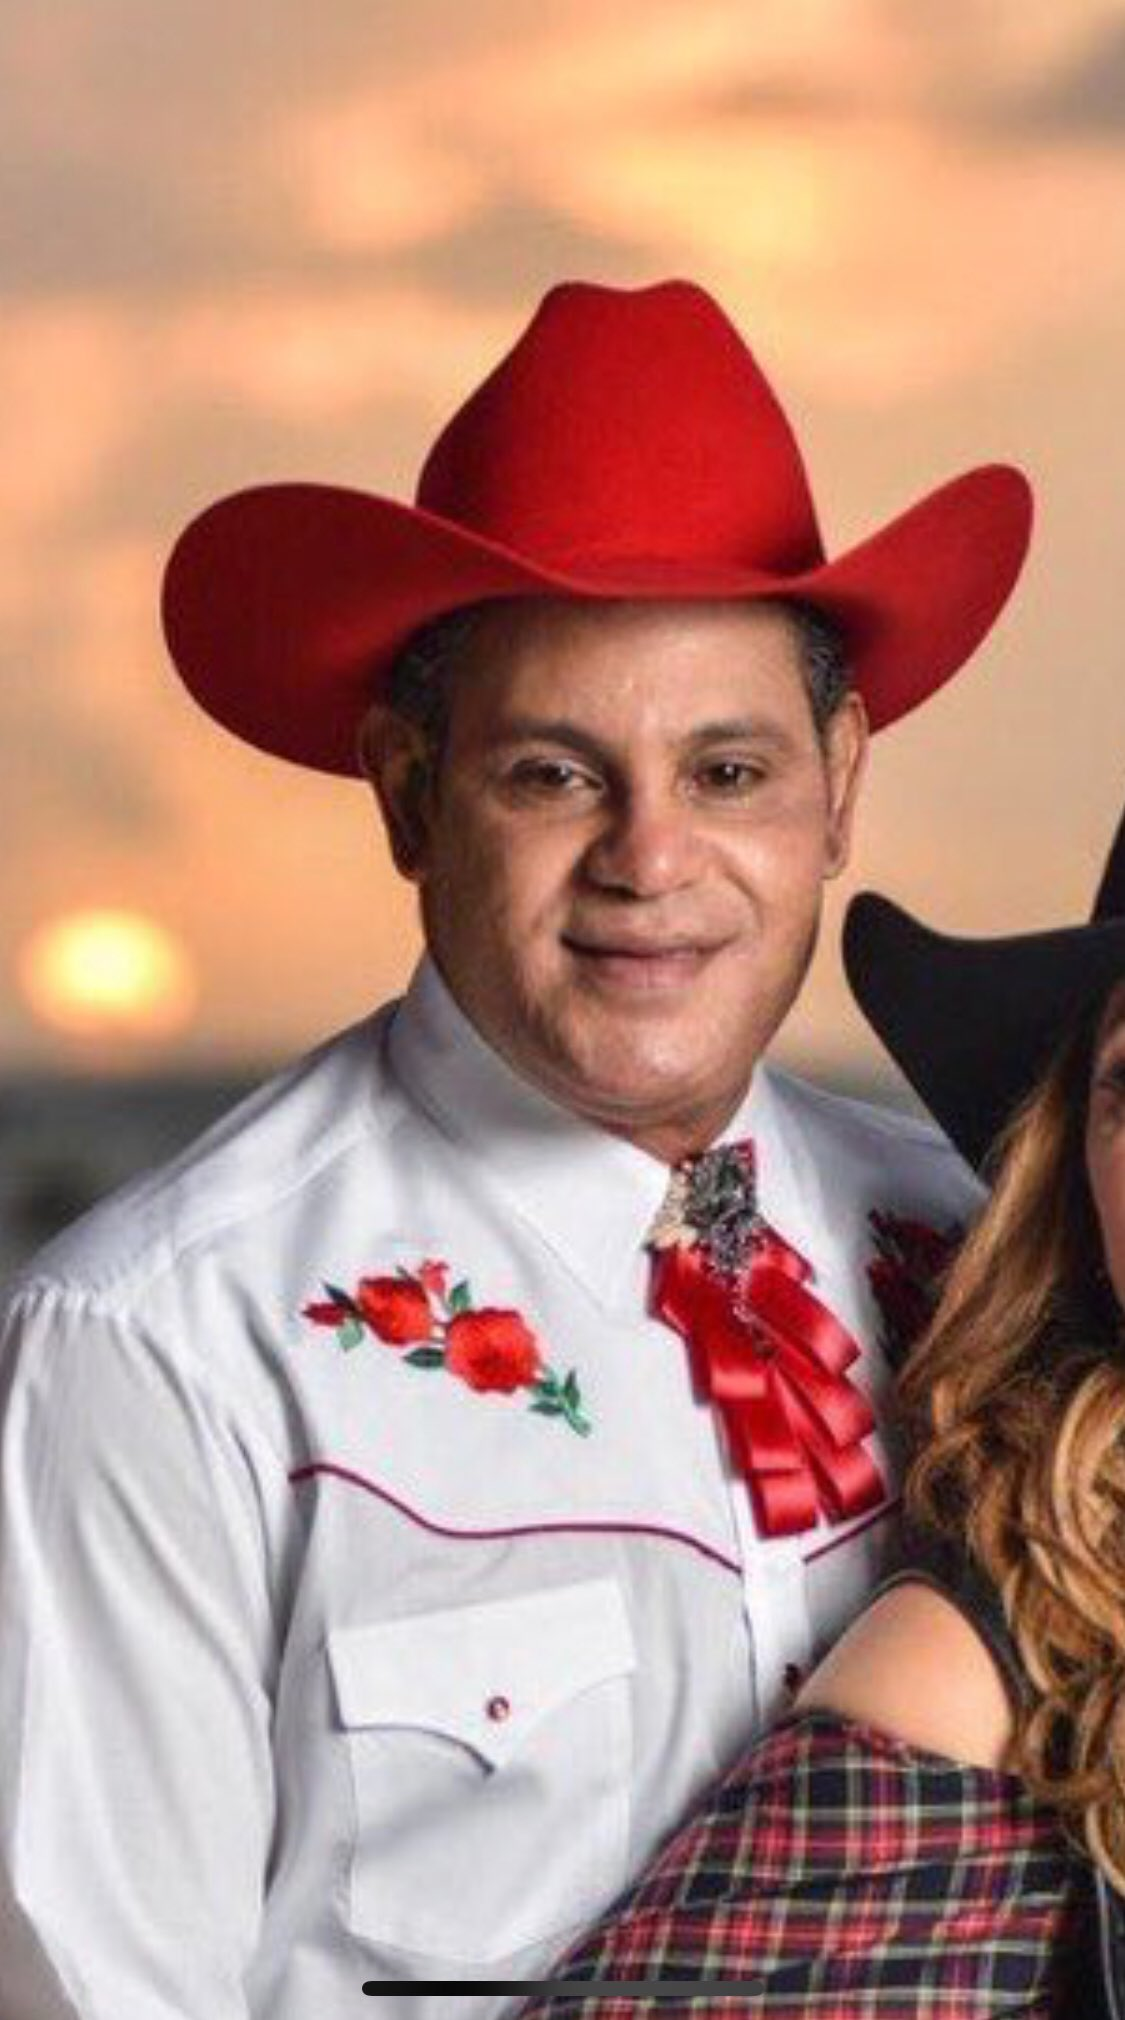 Hi I'm Sammy Sosa, and welcome to my Arby's franchise https://t.co/cg1fWueT7o